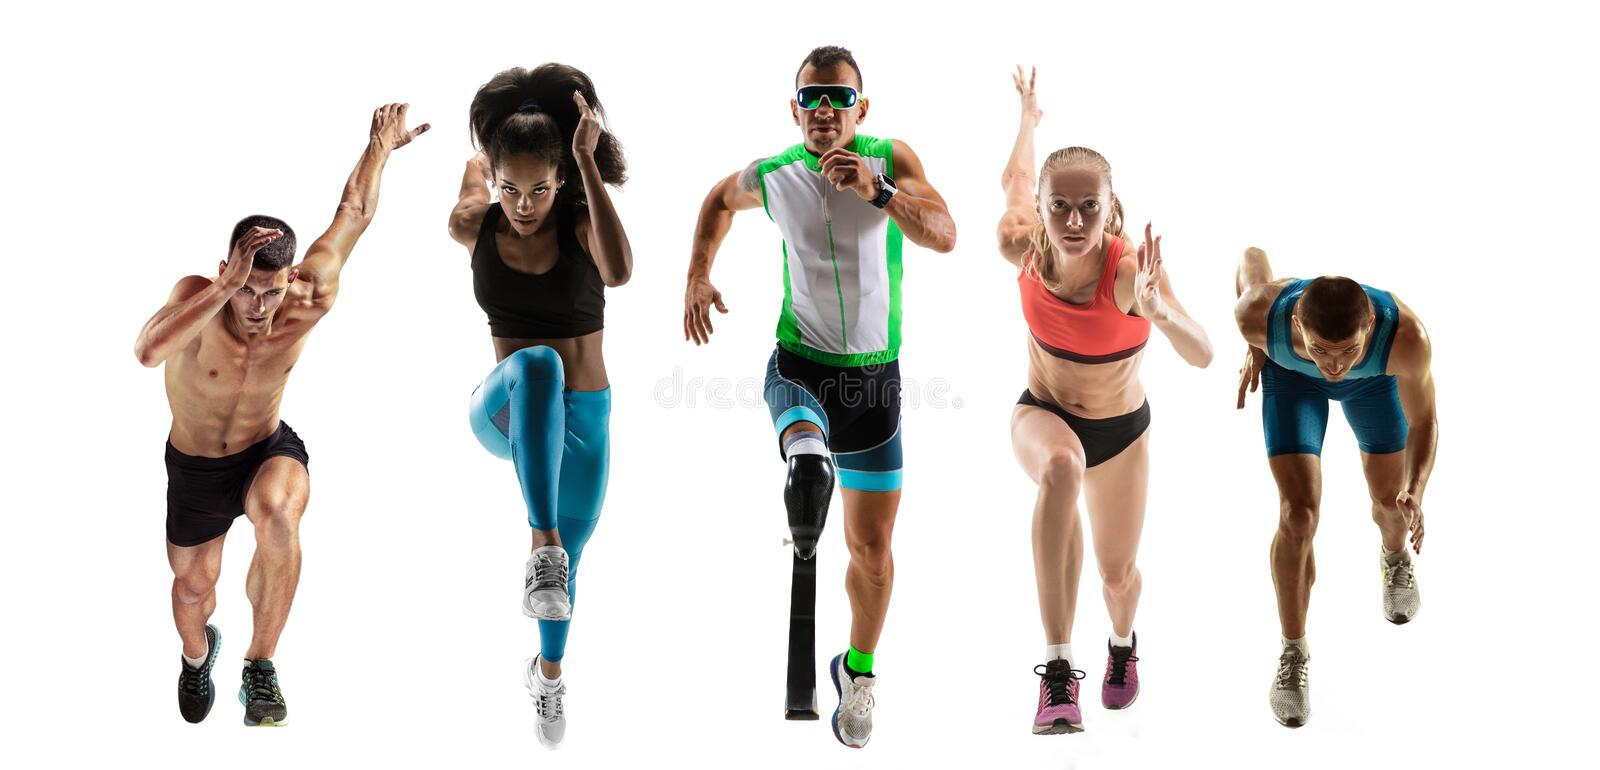 Creative collage of runners or joggers on white background stock photos